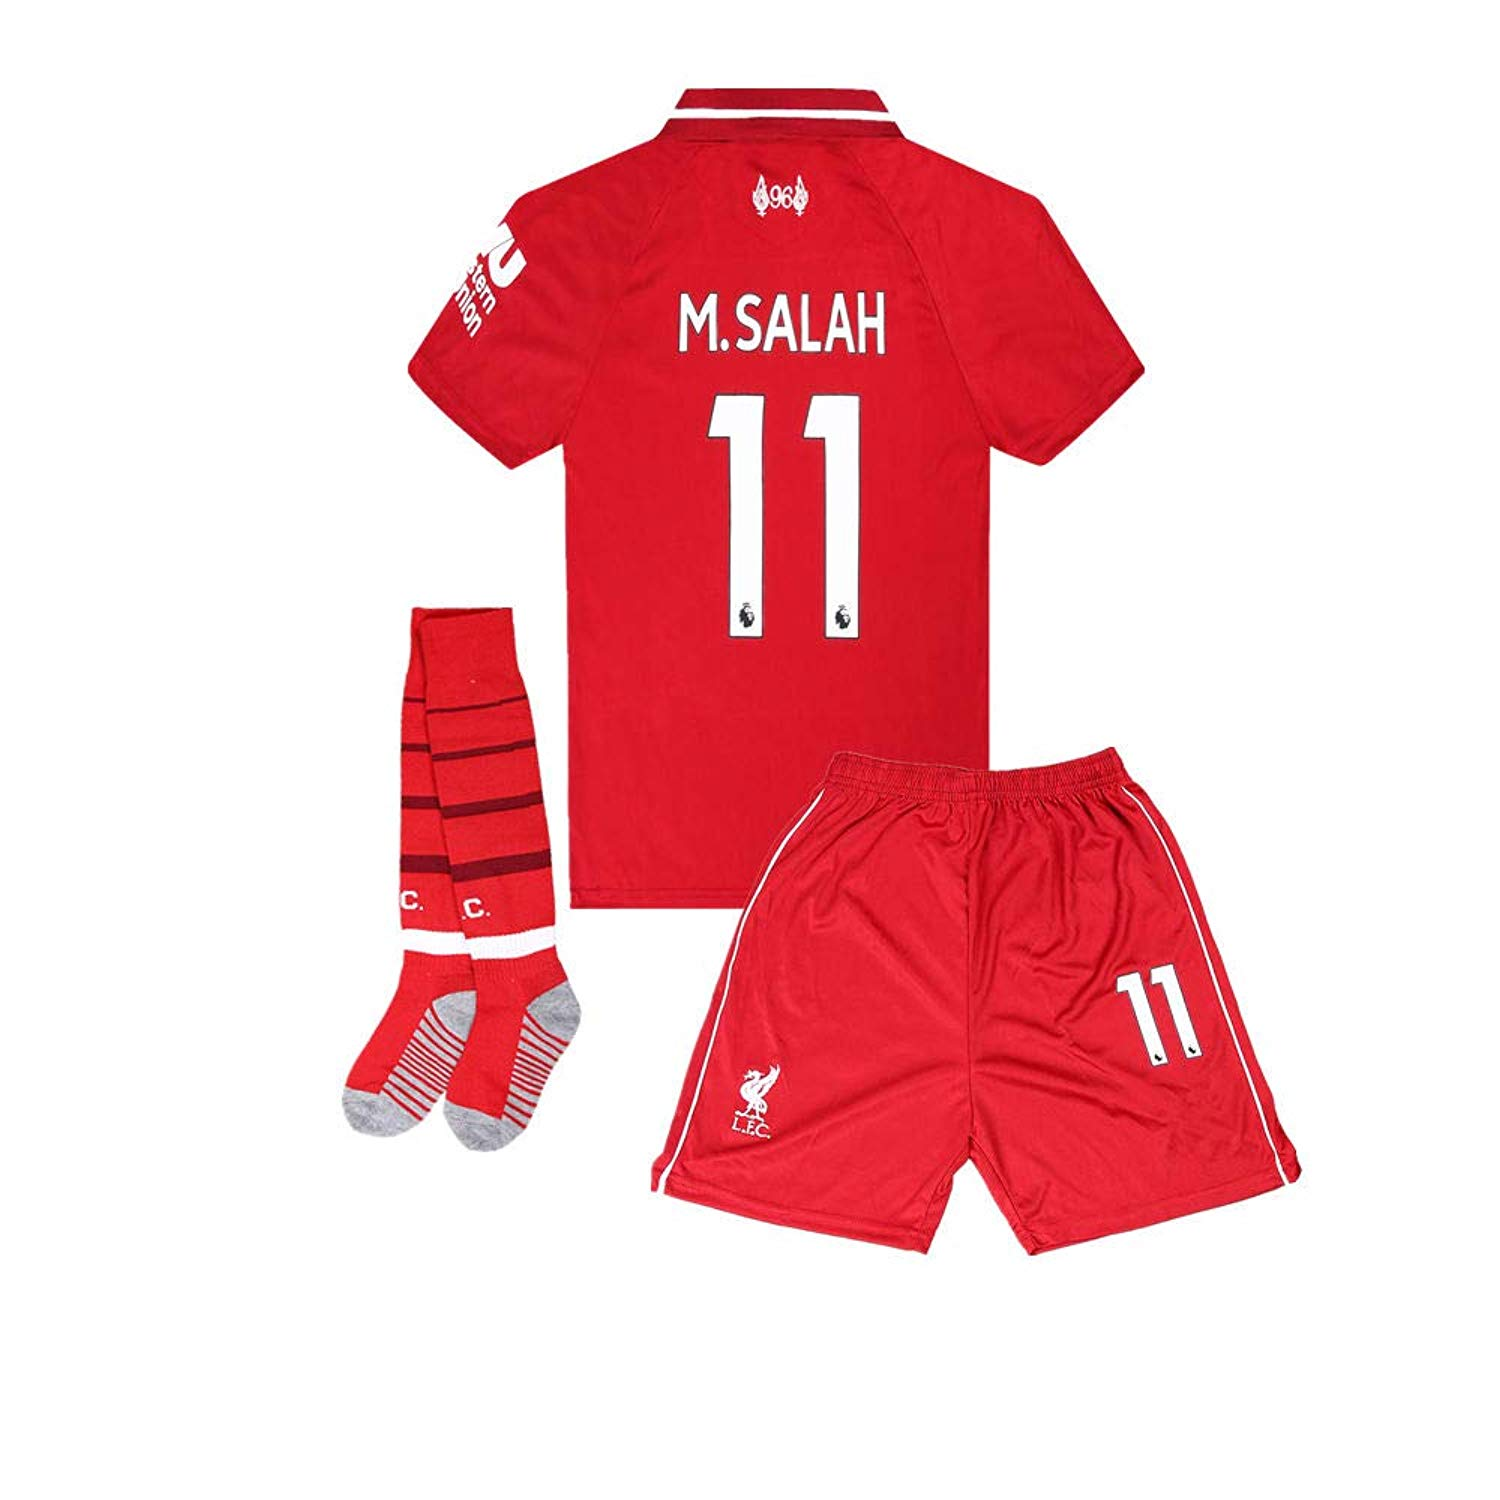 Liverpool #11 Salah Kids/Youth Soccer Jersey & Shorts & Socks 2018-2019 Home Red